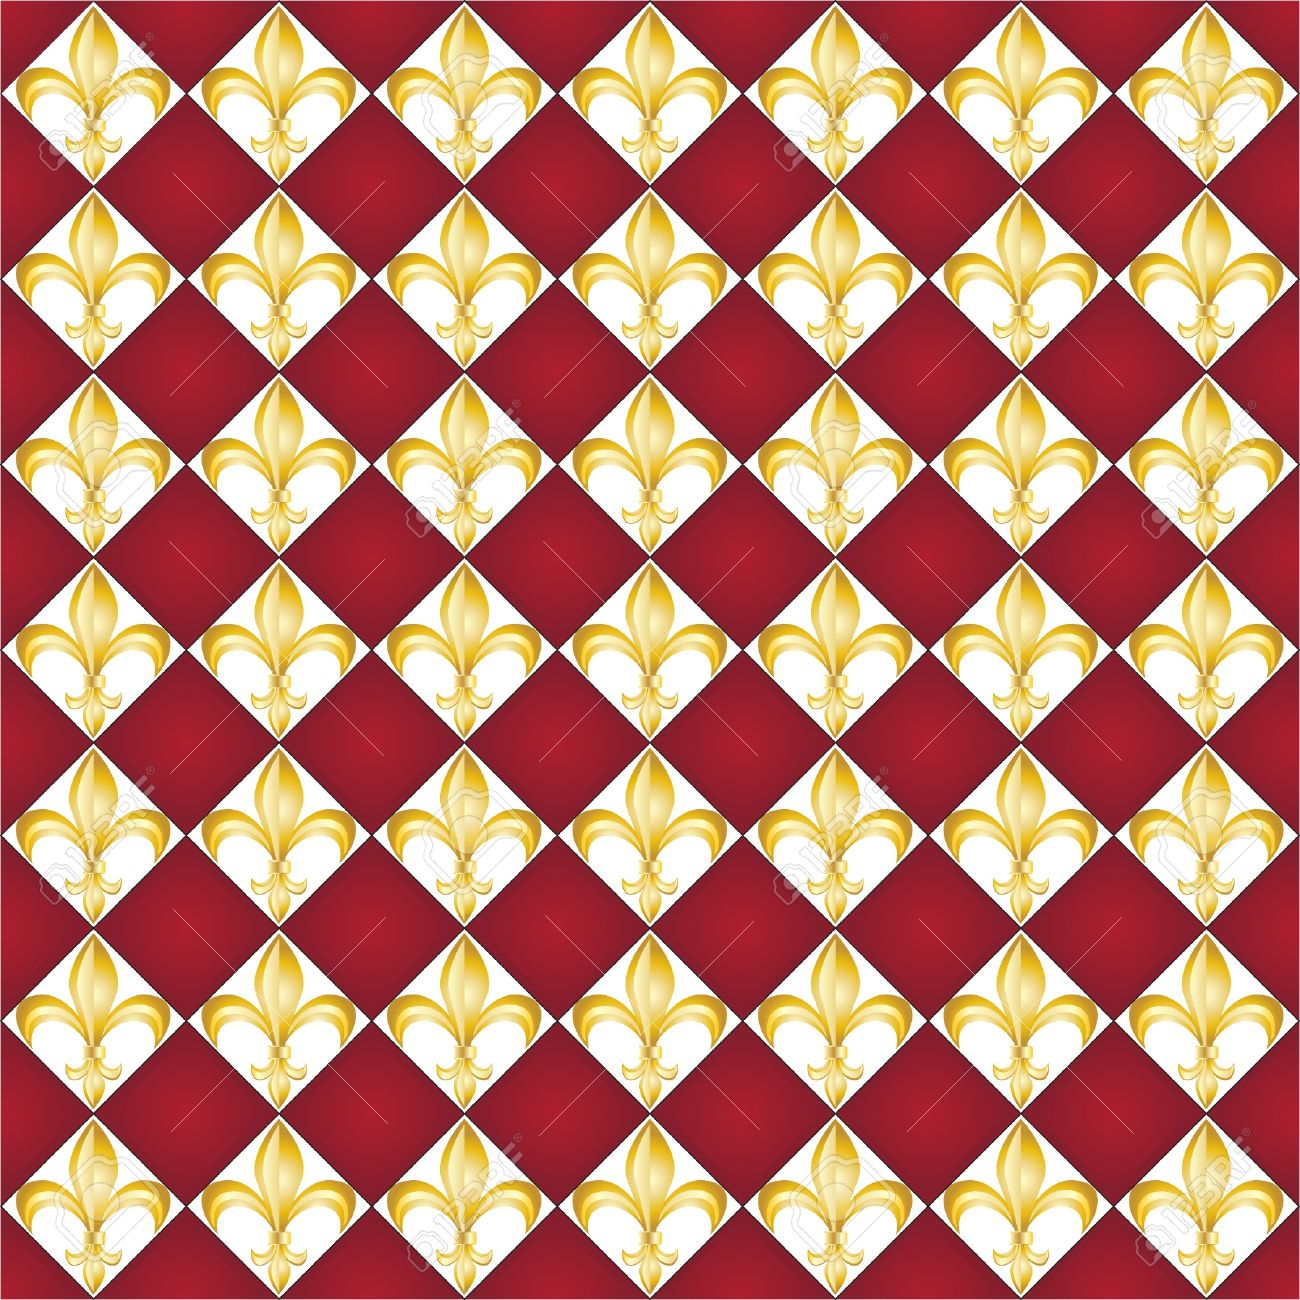 a seamless pattern of fleur de lys tiles on red background royalty